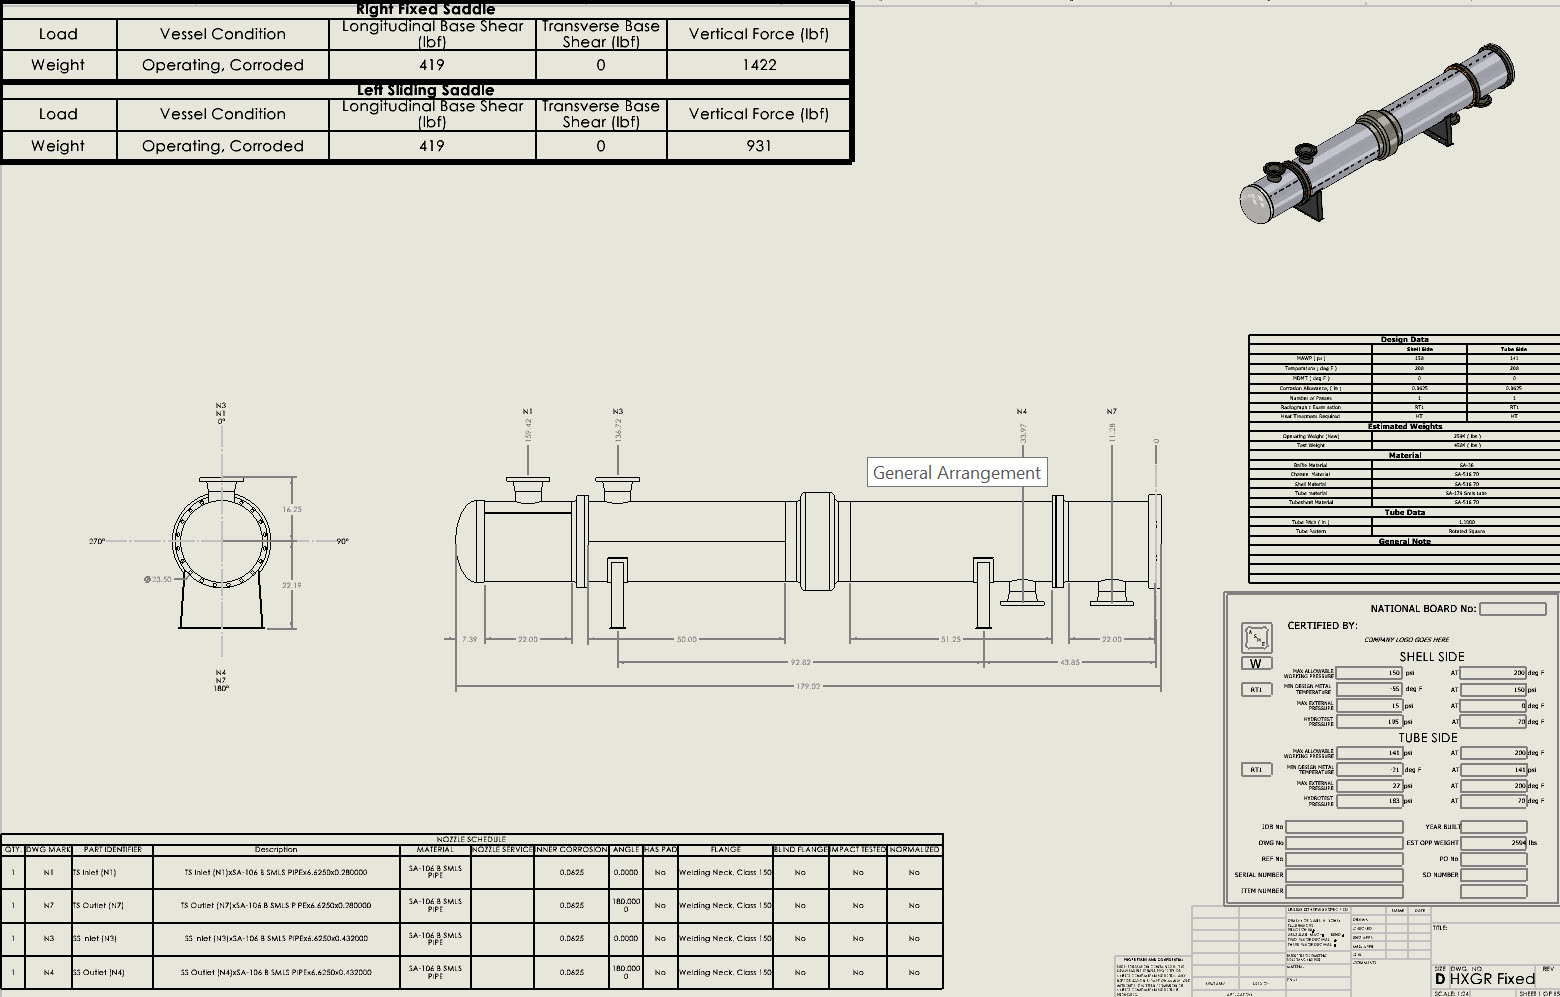 General arrangement drawings are generated by the Codeware Interface